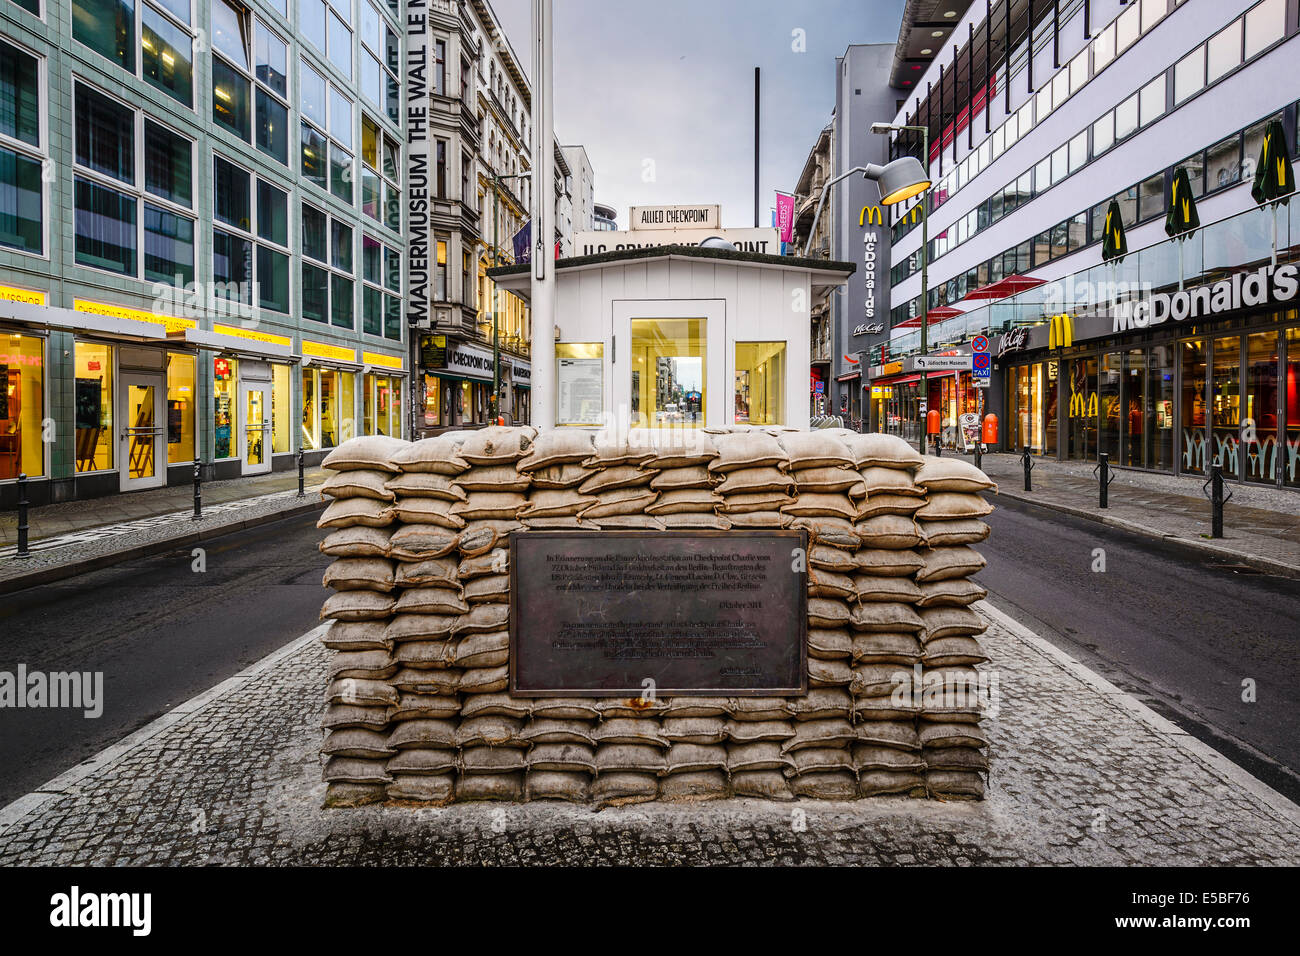 Checkpoint Charlie in Berlin, Germany. Stock Photo